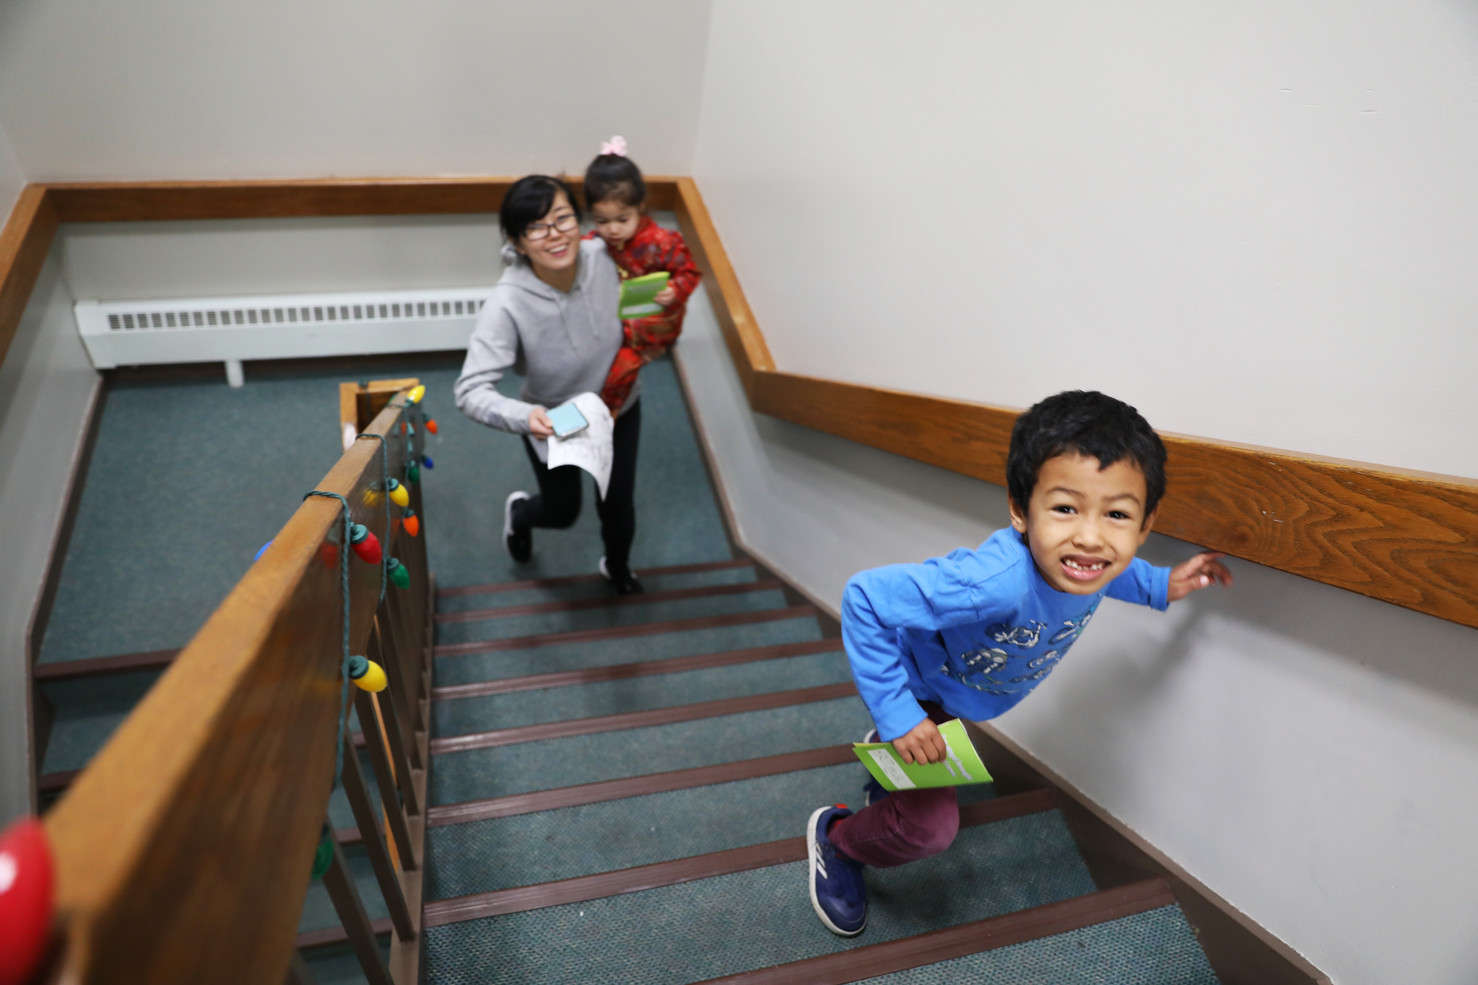 Yan, Jane, and Arthur, from left to right, walk stairs after Children's Sunday School finishing. The family usually go to downtown for lunch and then send Arthur to Chinese language class on Sunday's afternoon.